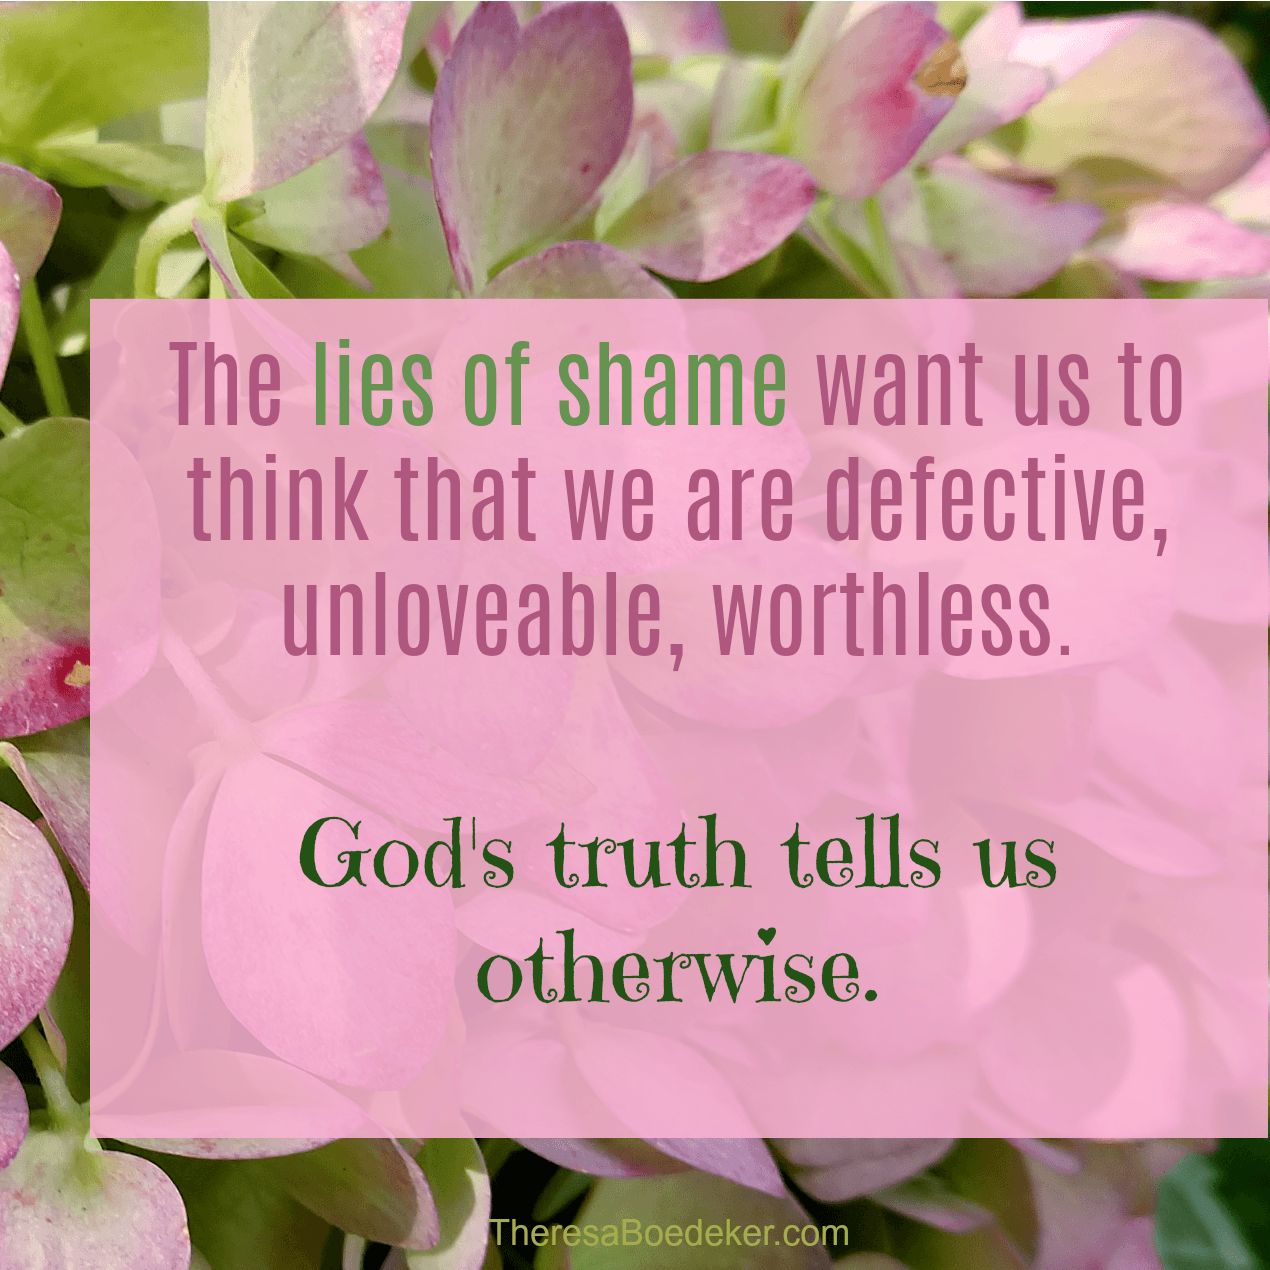 The lies of shame want to tell us we are the defective ones, the unworthy and unlovable ones. But truth can break the bonds of shame.